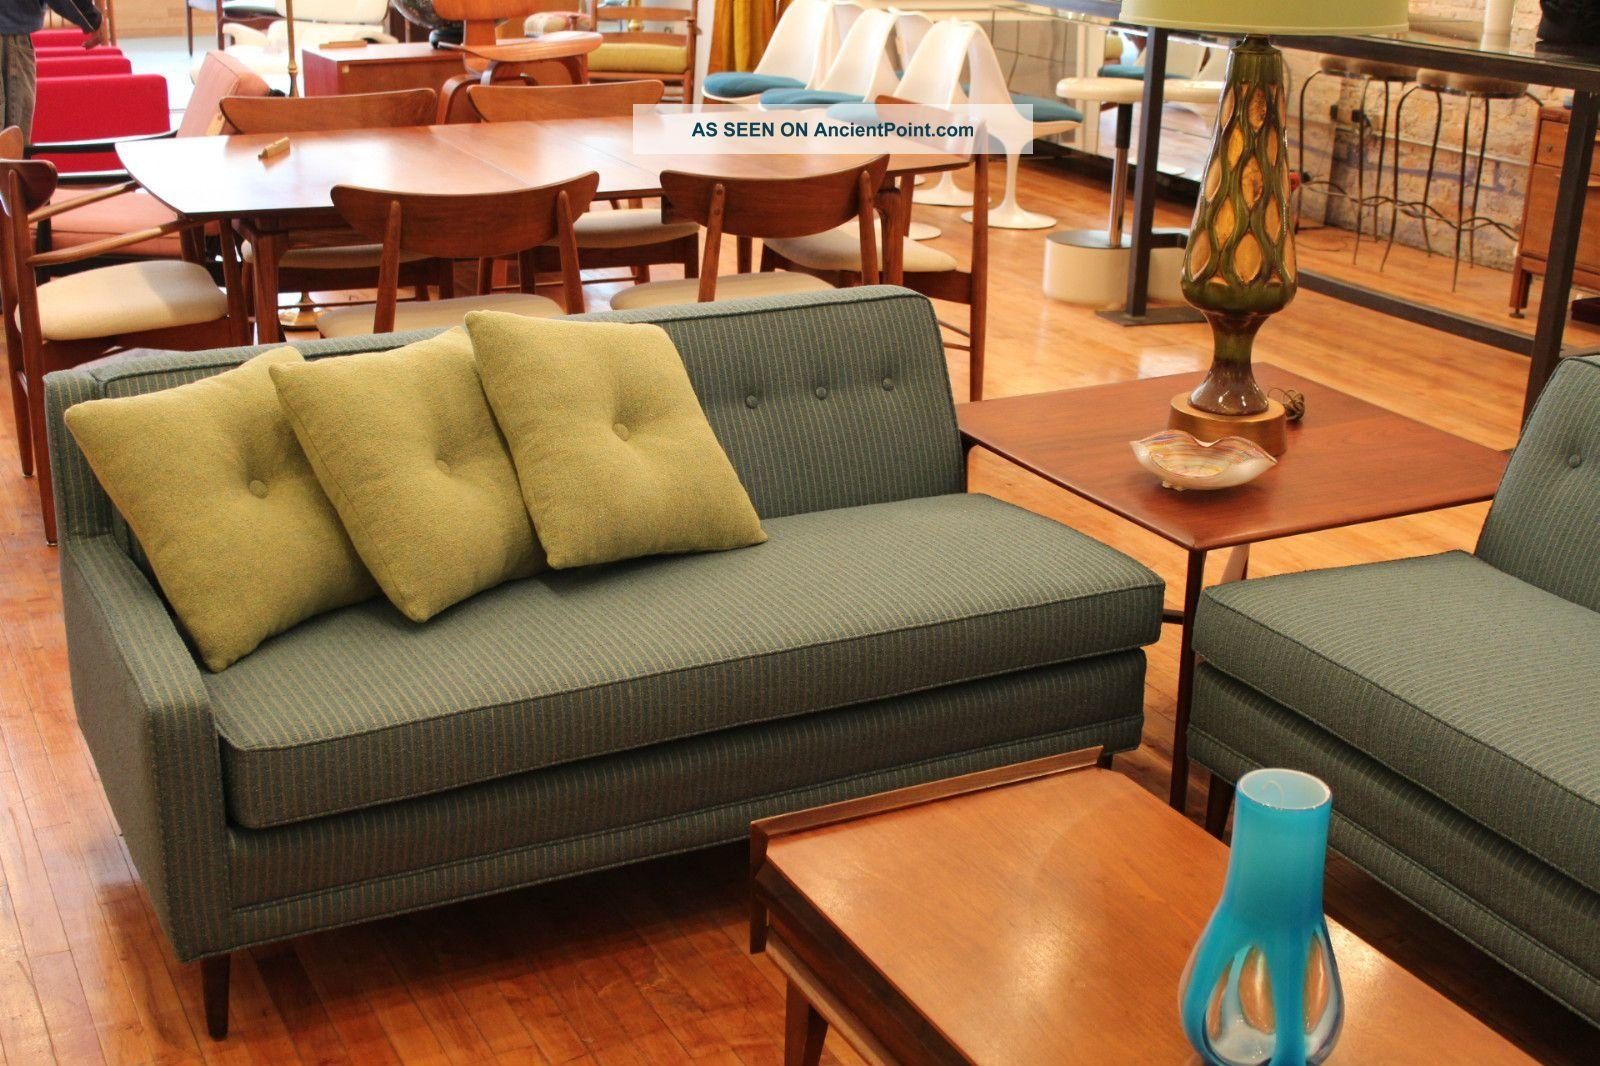 Sofas Center : Curved Sofa Sectional Bassett With Recliner Small Inside Retro Sectional Couch (Image 17 of 20)